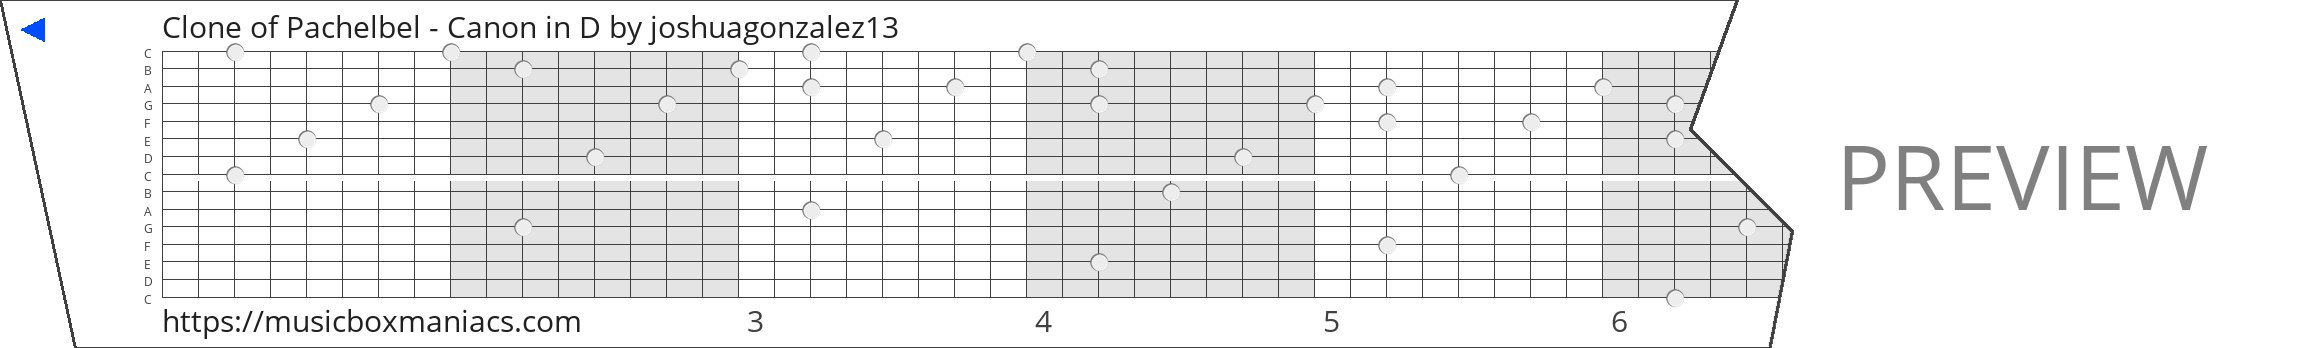 Clone of Pachelbel - Canon in D 15 note music box paper strip